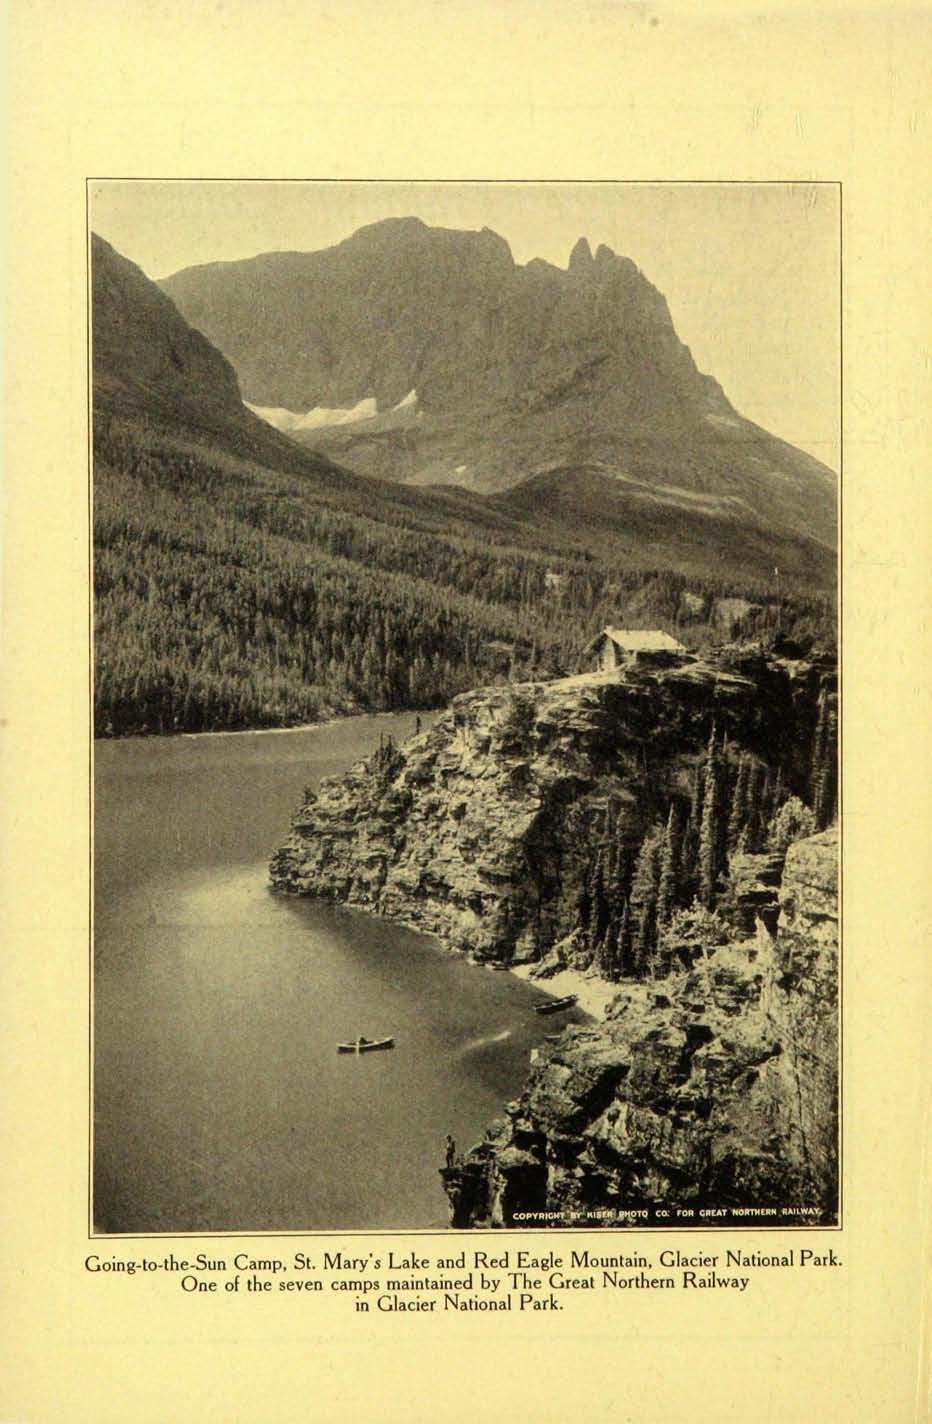 Going-to-the-Sun Camp, St. Mary's Lake and Red Eagle Mountain, Glacier National Park.